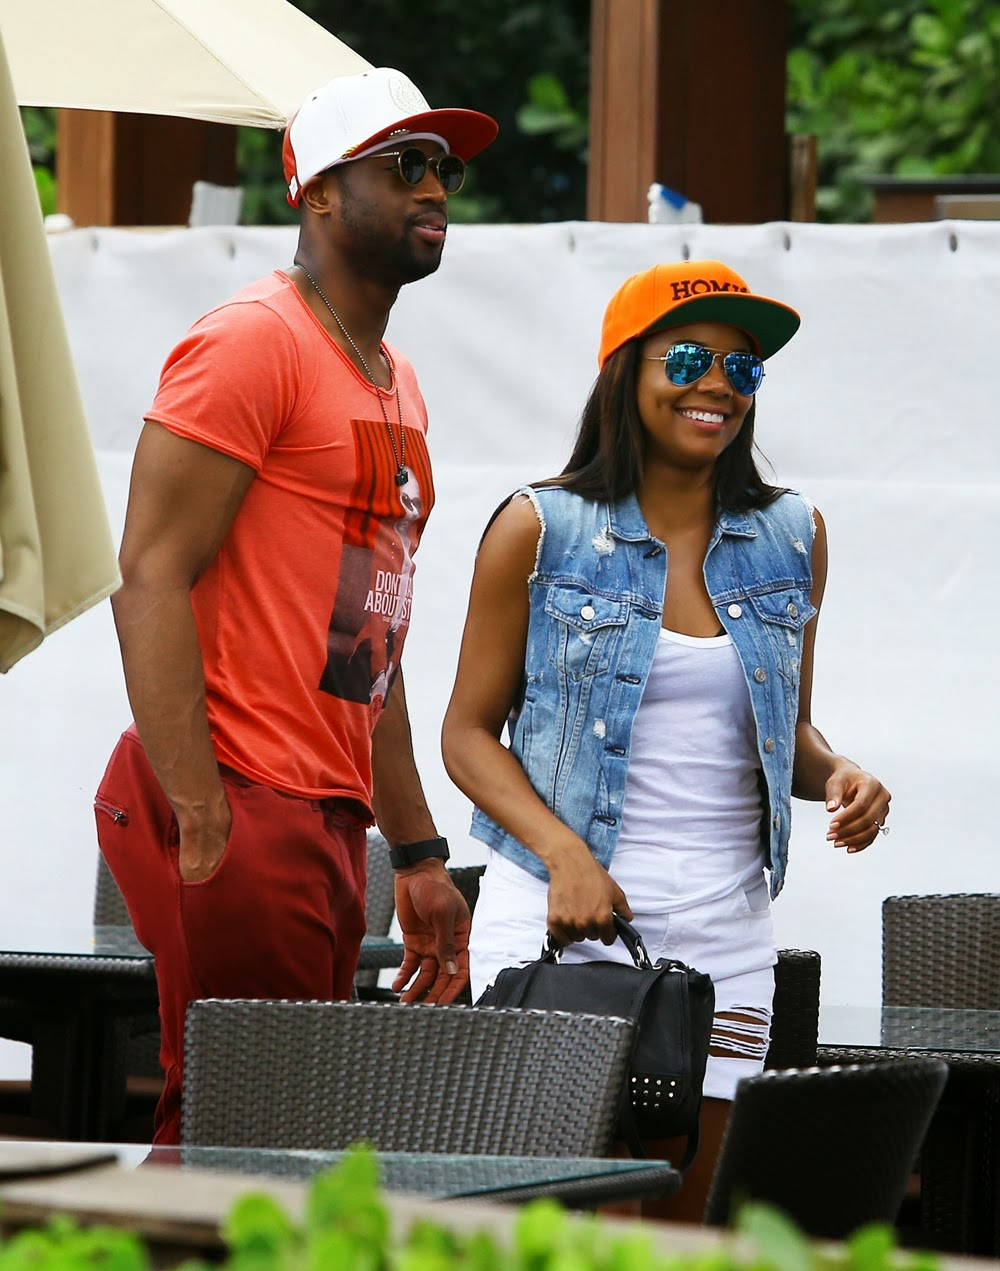 dating union Gabrielle union is reportedly expecting a baby with her fiancé, dwayne wade, according to a new mediatakeout report buzz about gabby's pregnancy comes after dwyane revealed he fathered a child with an ex, aja metoyer, just months before proposing to gabrielle in dec 2013.